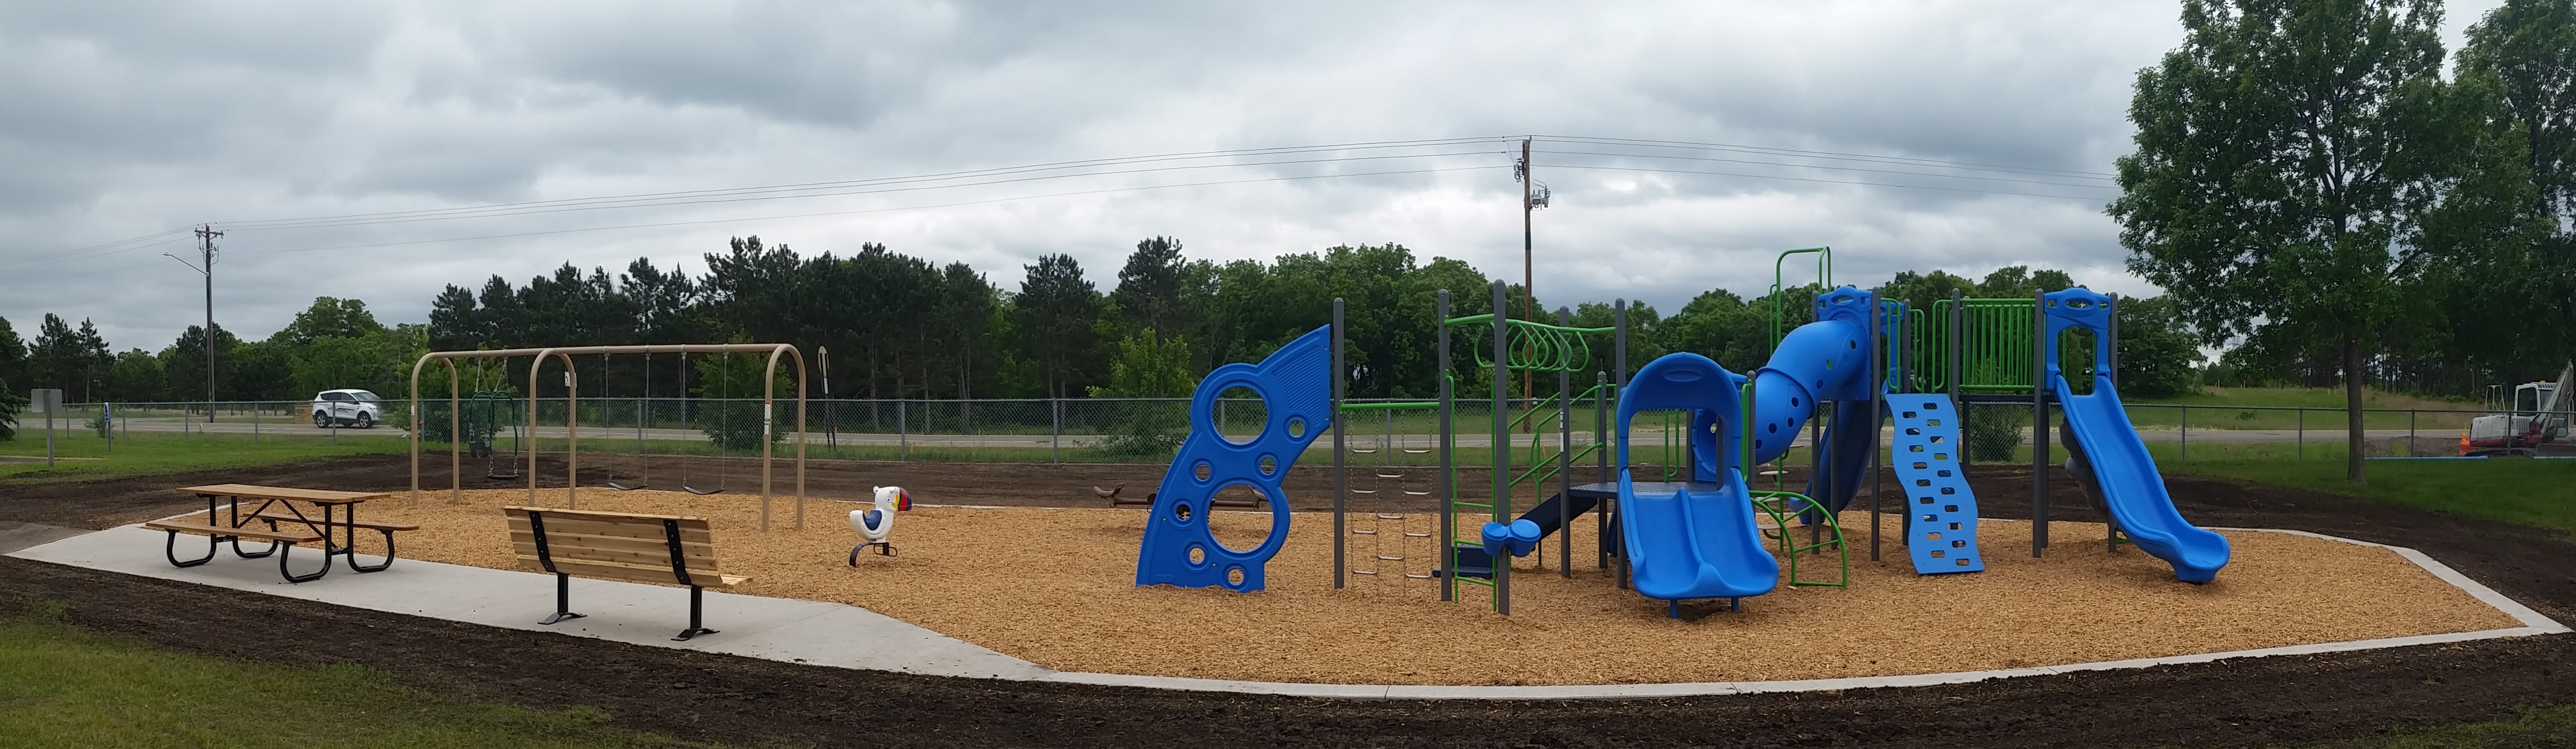 Andover Lions Playground 1